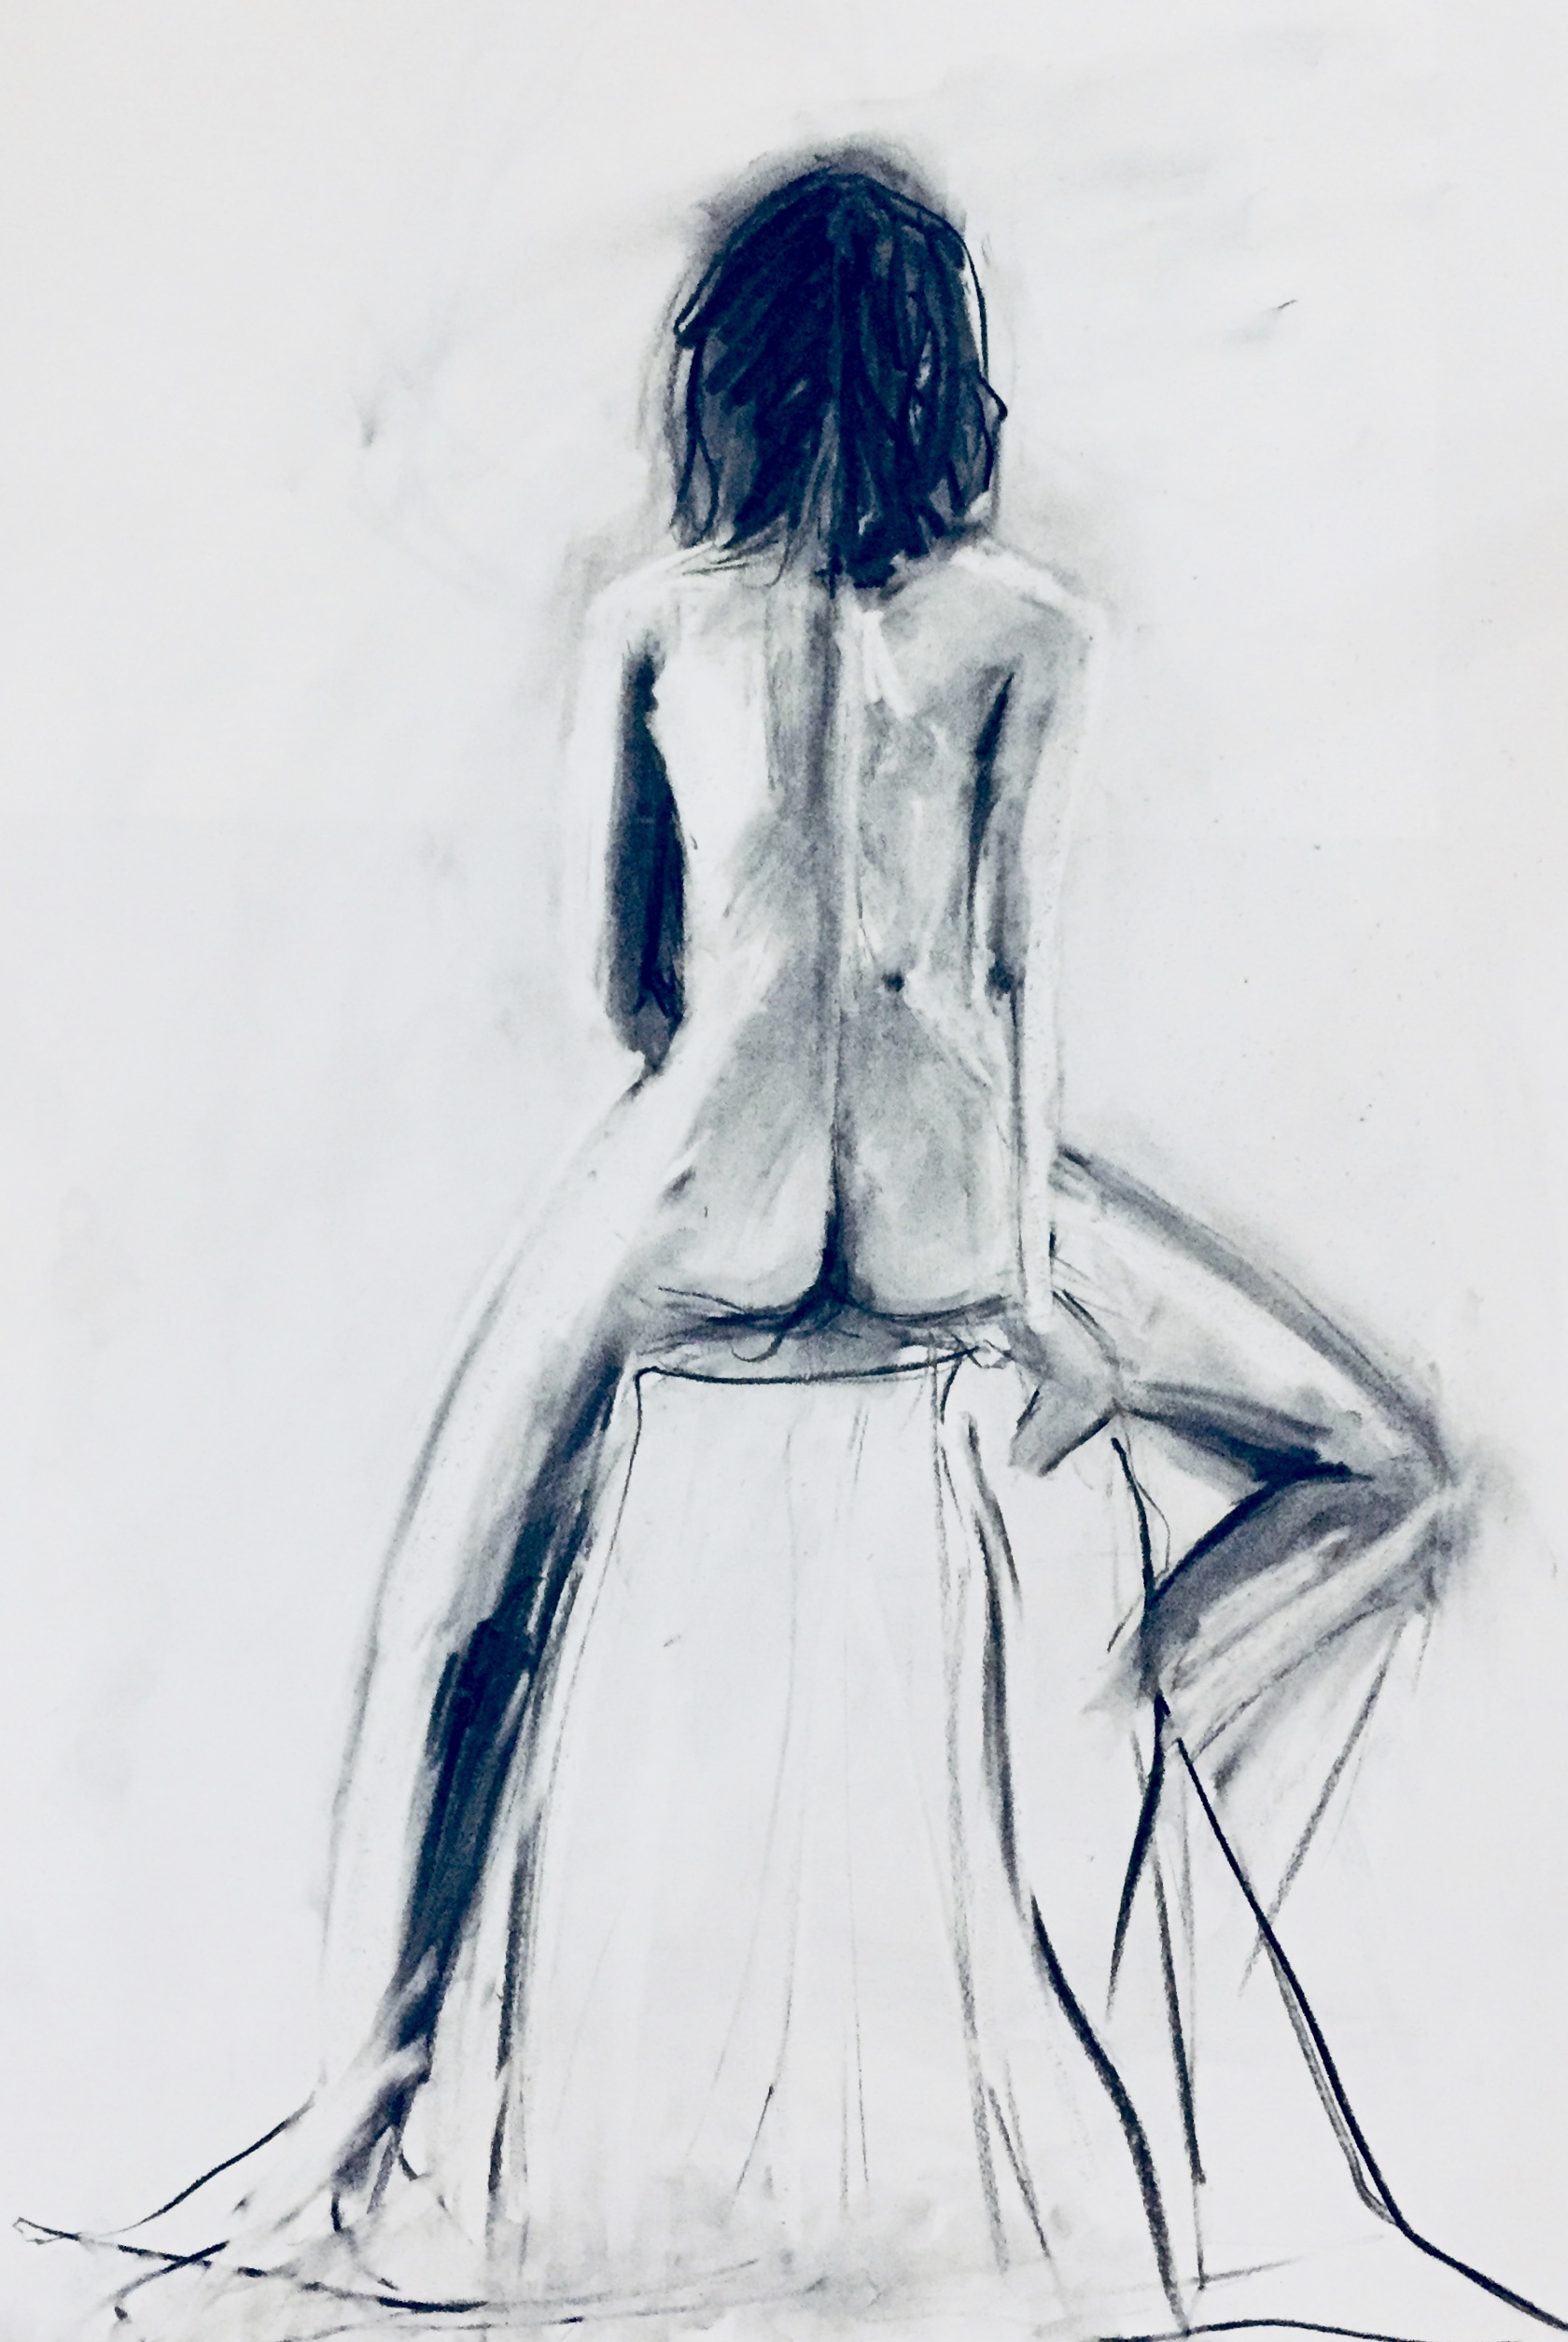 Life drawing artwork by Tessa Houghton